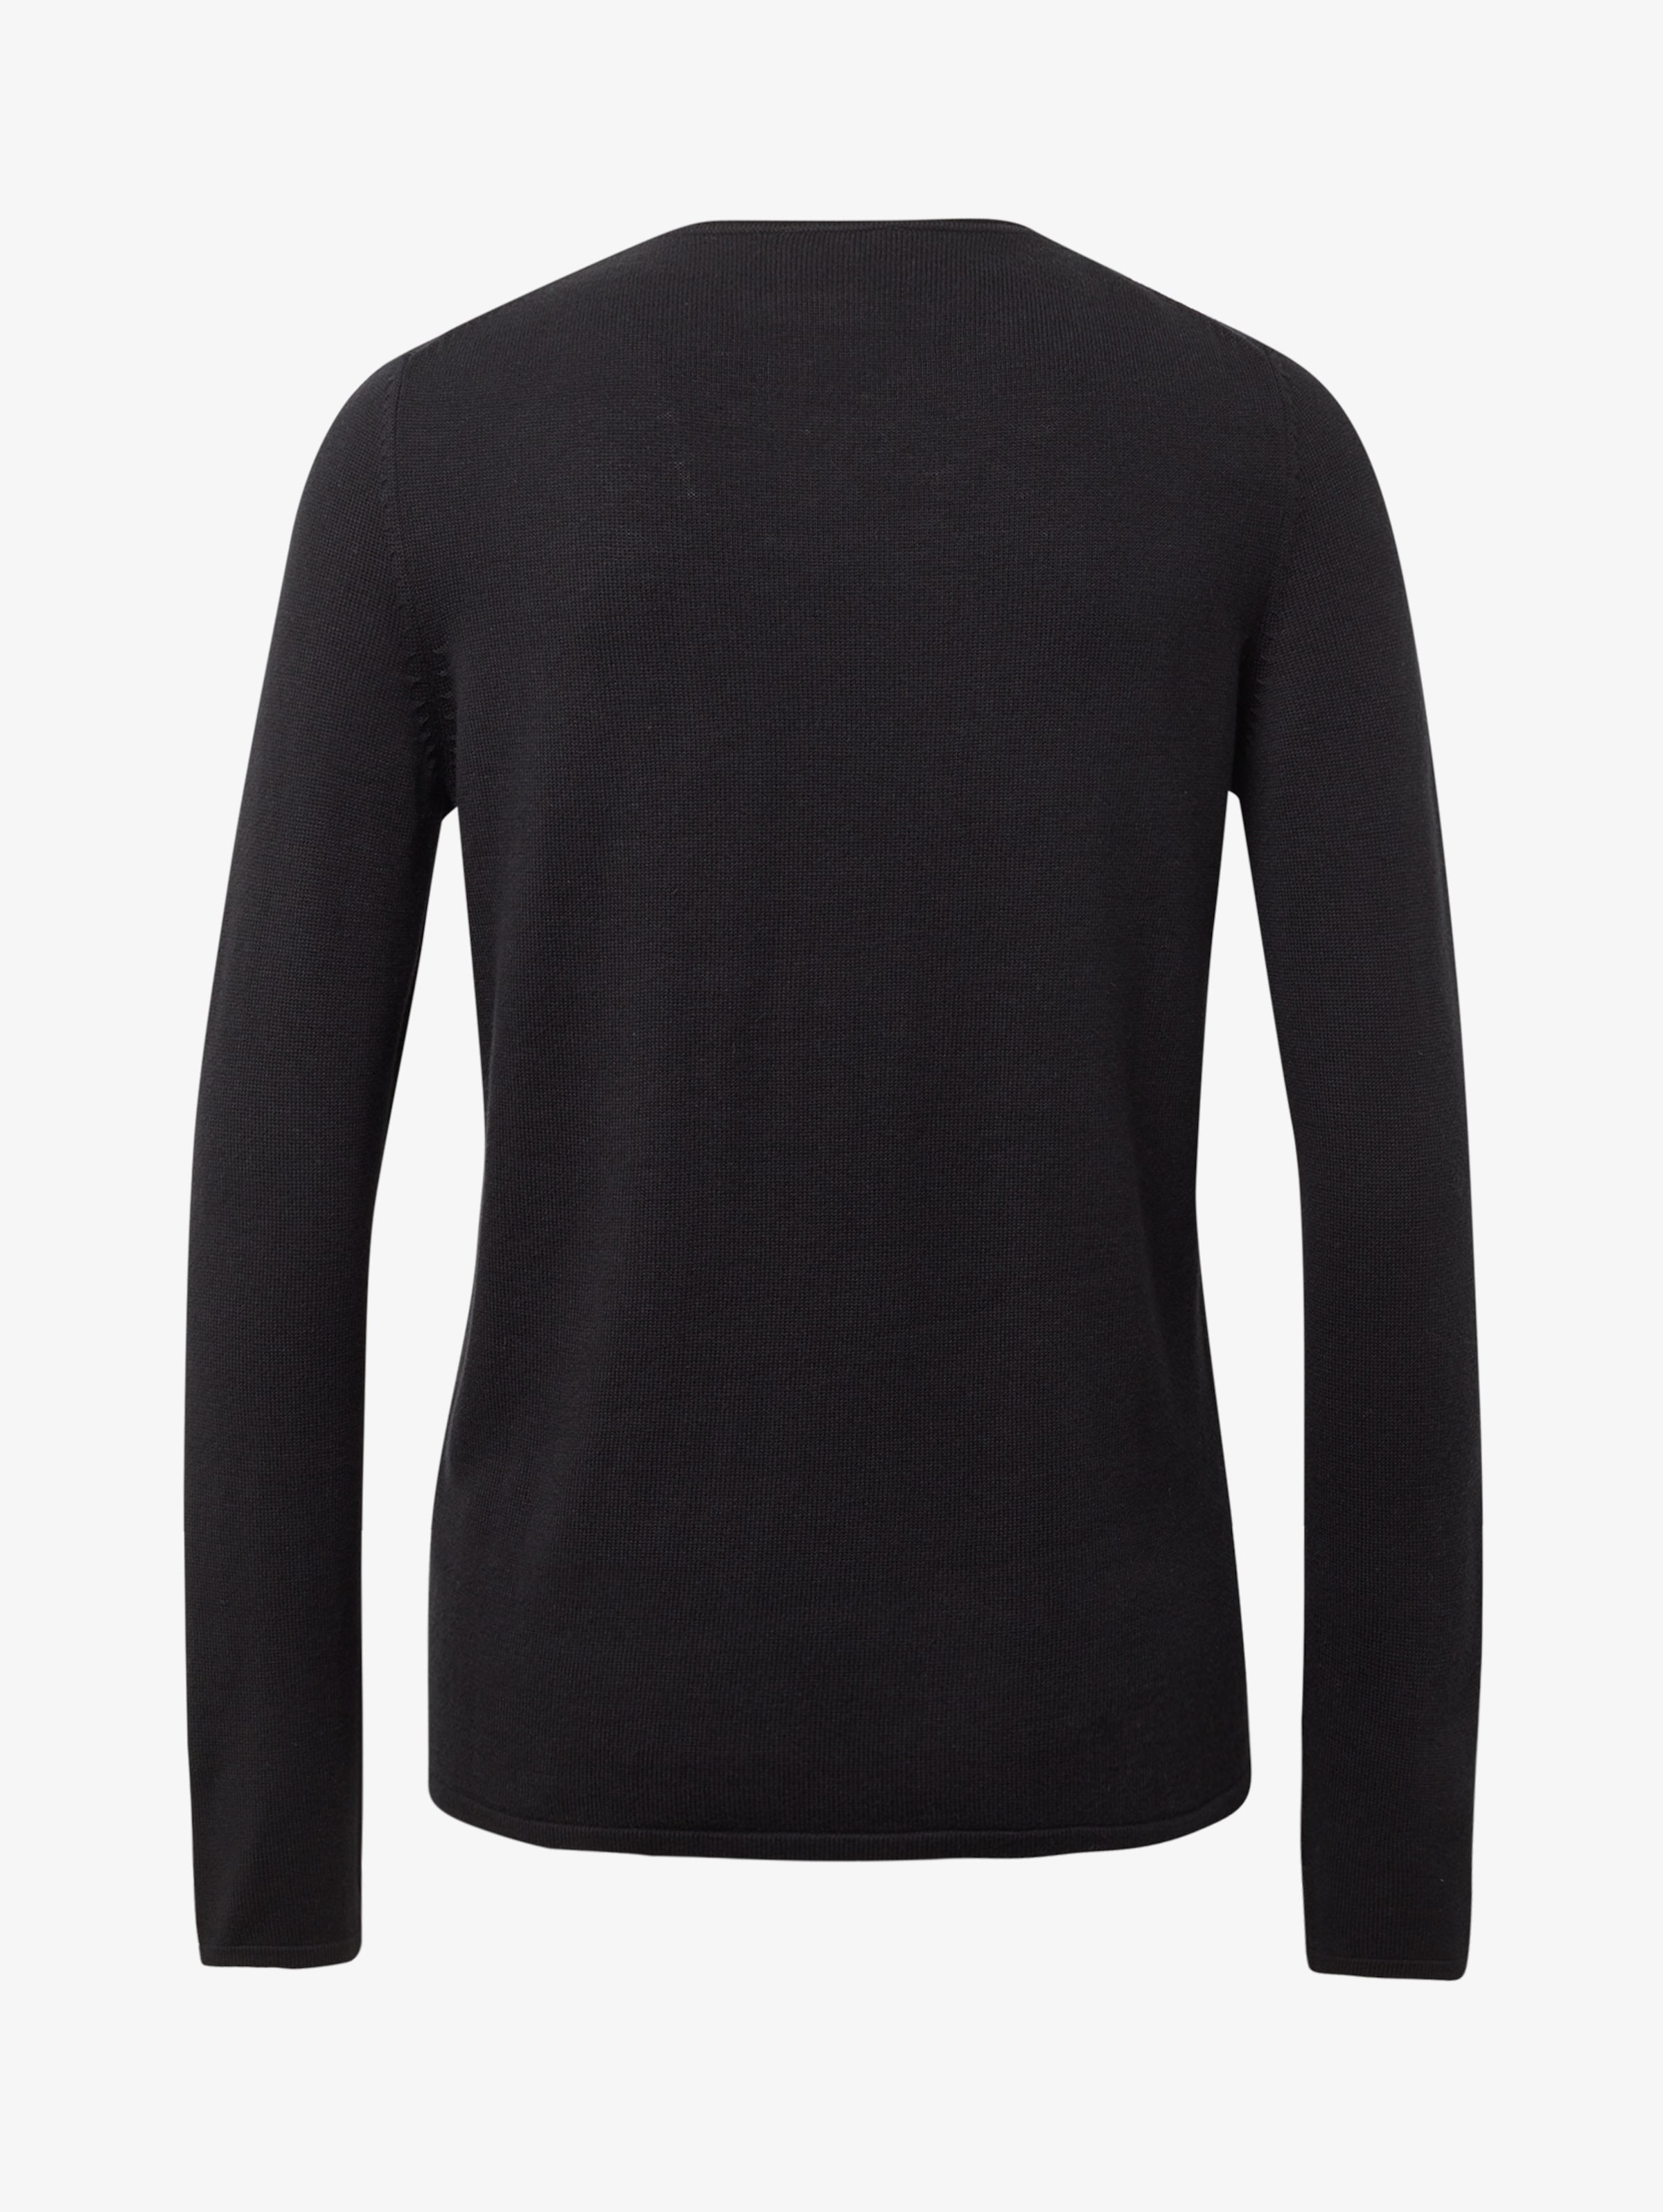 In Tom Tailor Schwarz Pullover Tom Tailor Pullover In b7fY6gy